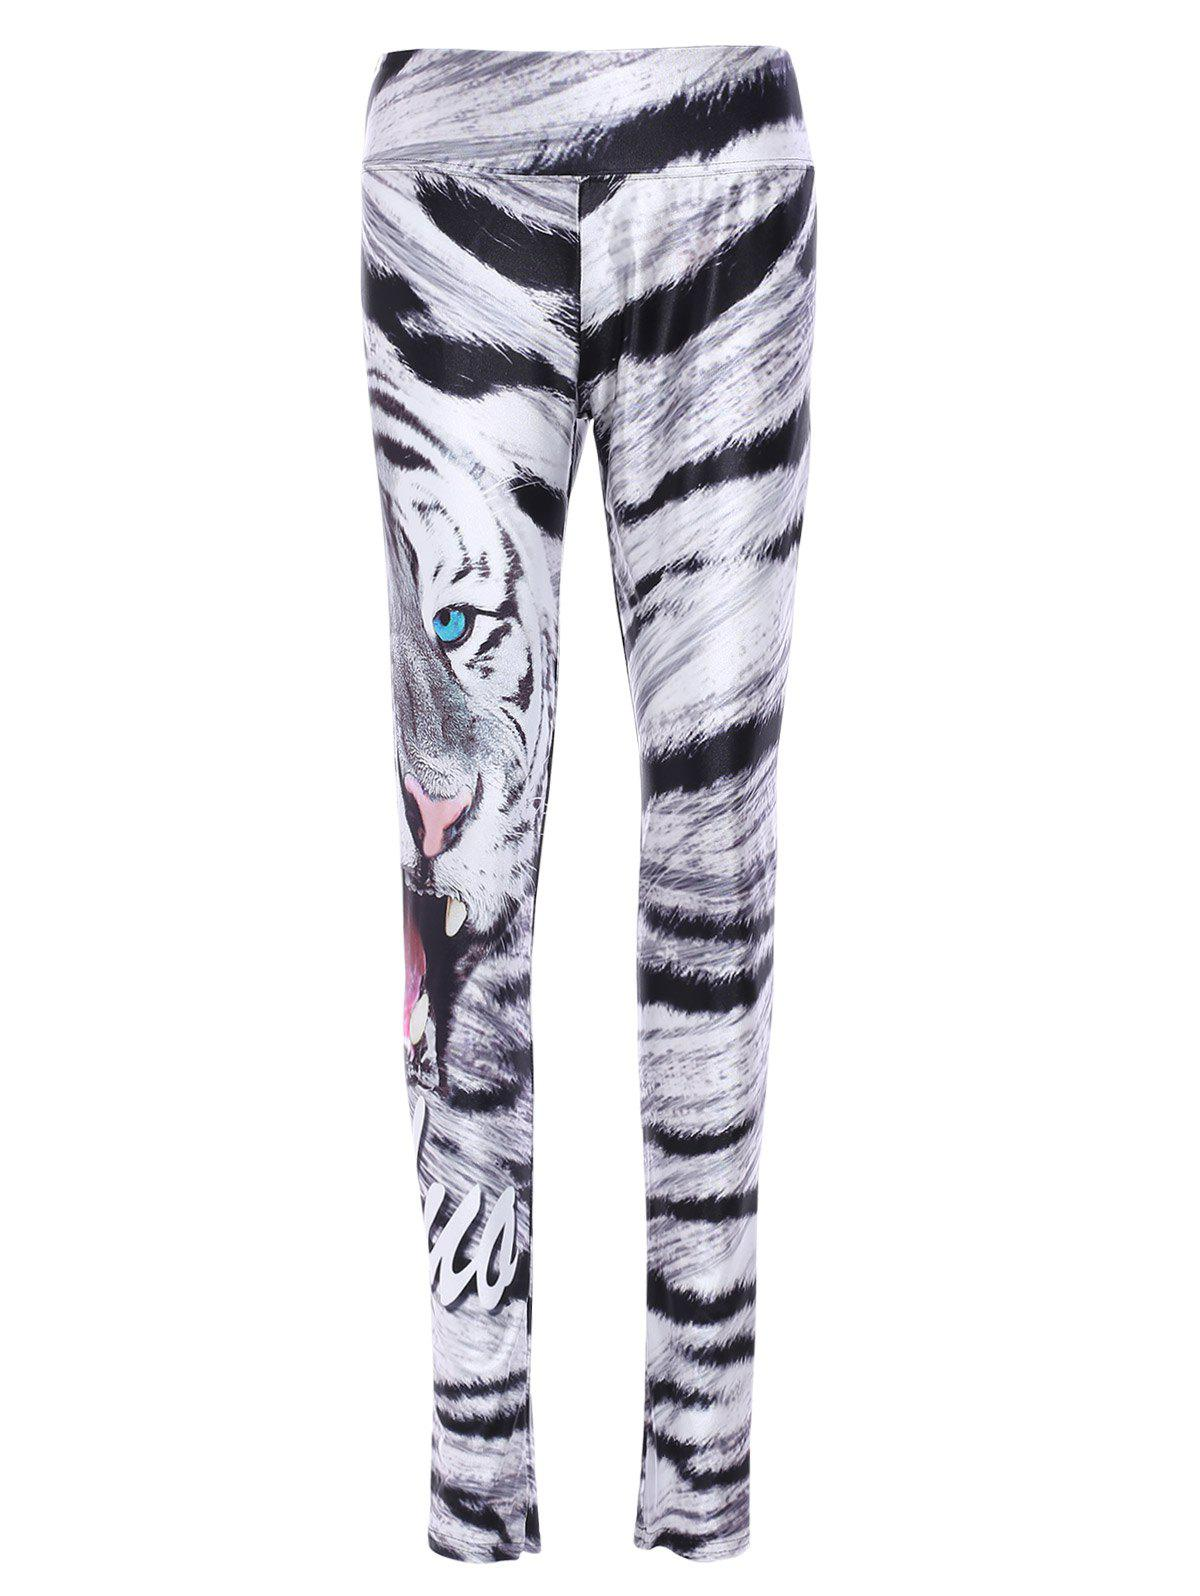 Fashionable Elastic Waist Slimming Tiger Print Women's Yoga Pants - COLORMIX ONE SIZE(FIT SIZE XS TO M)